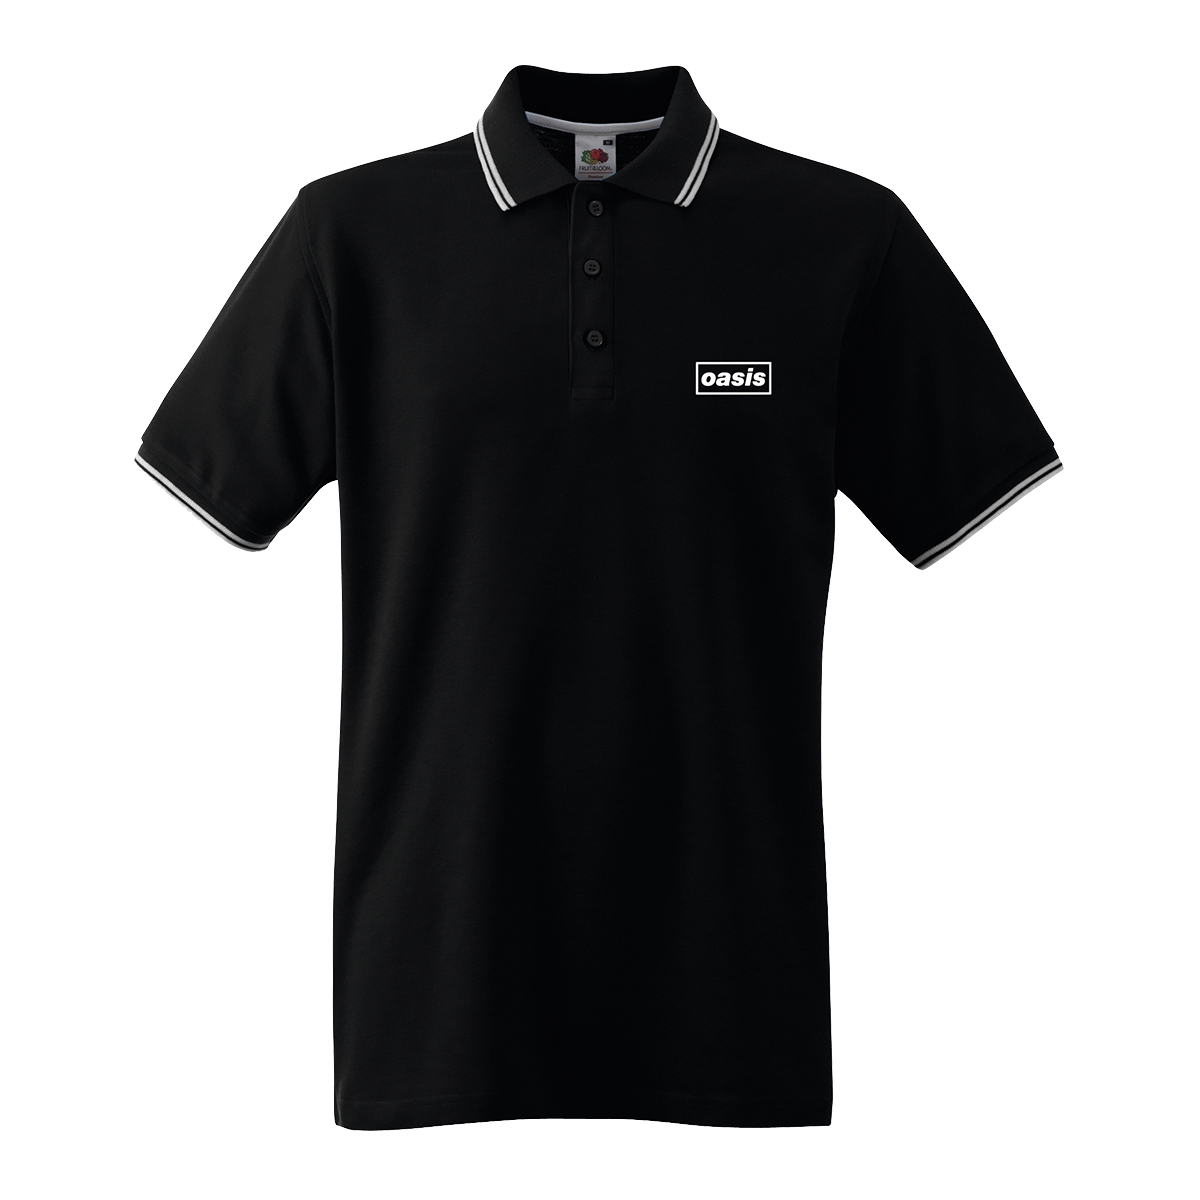 Buy Online Oasis - Oasis Replica Tour Black Polo